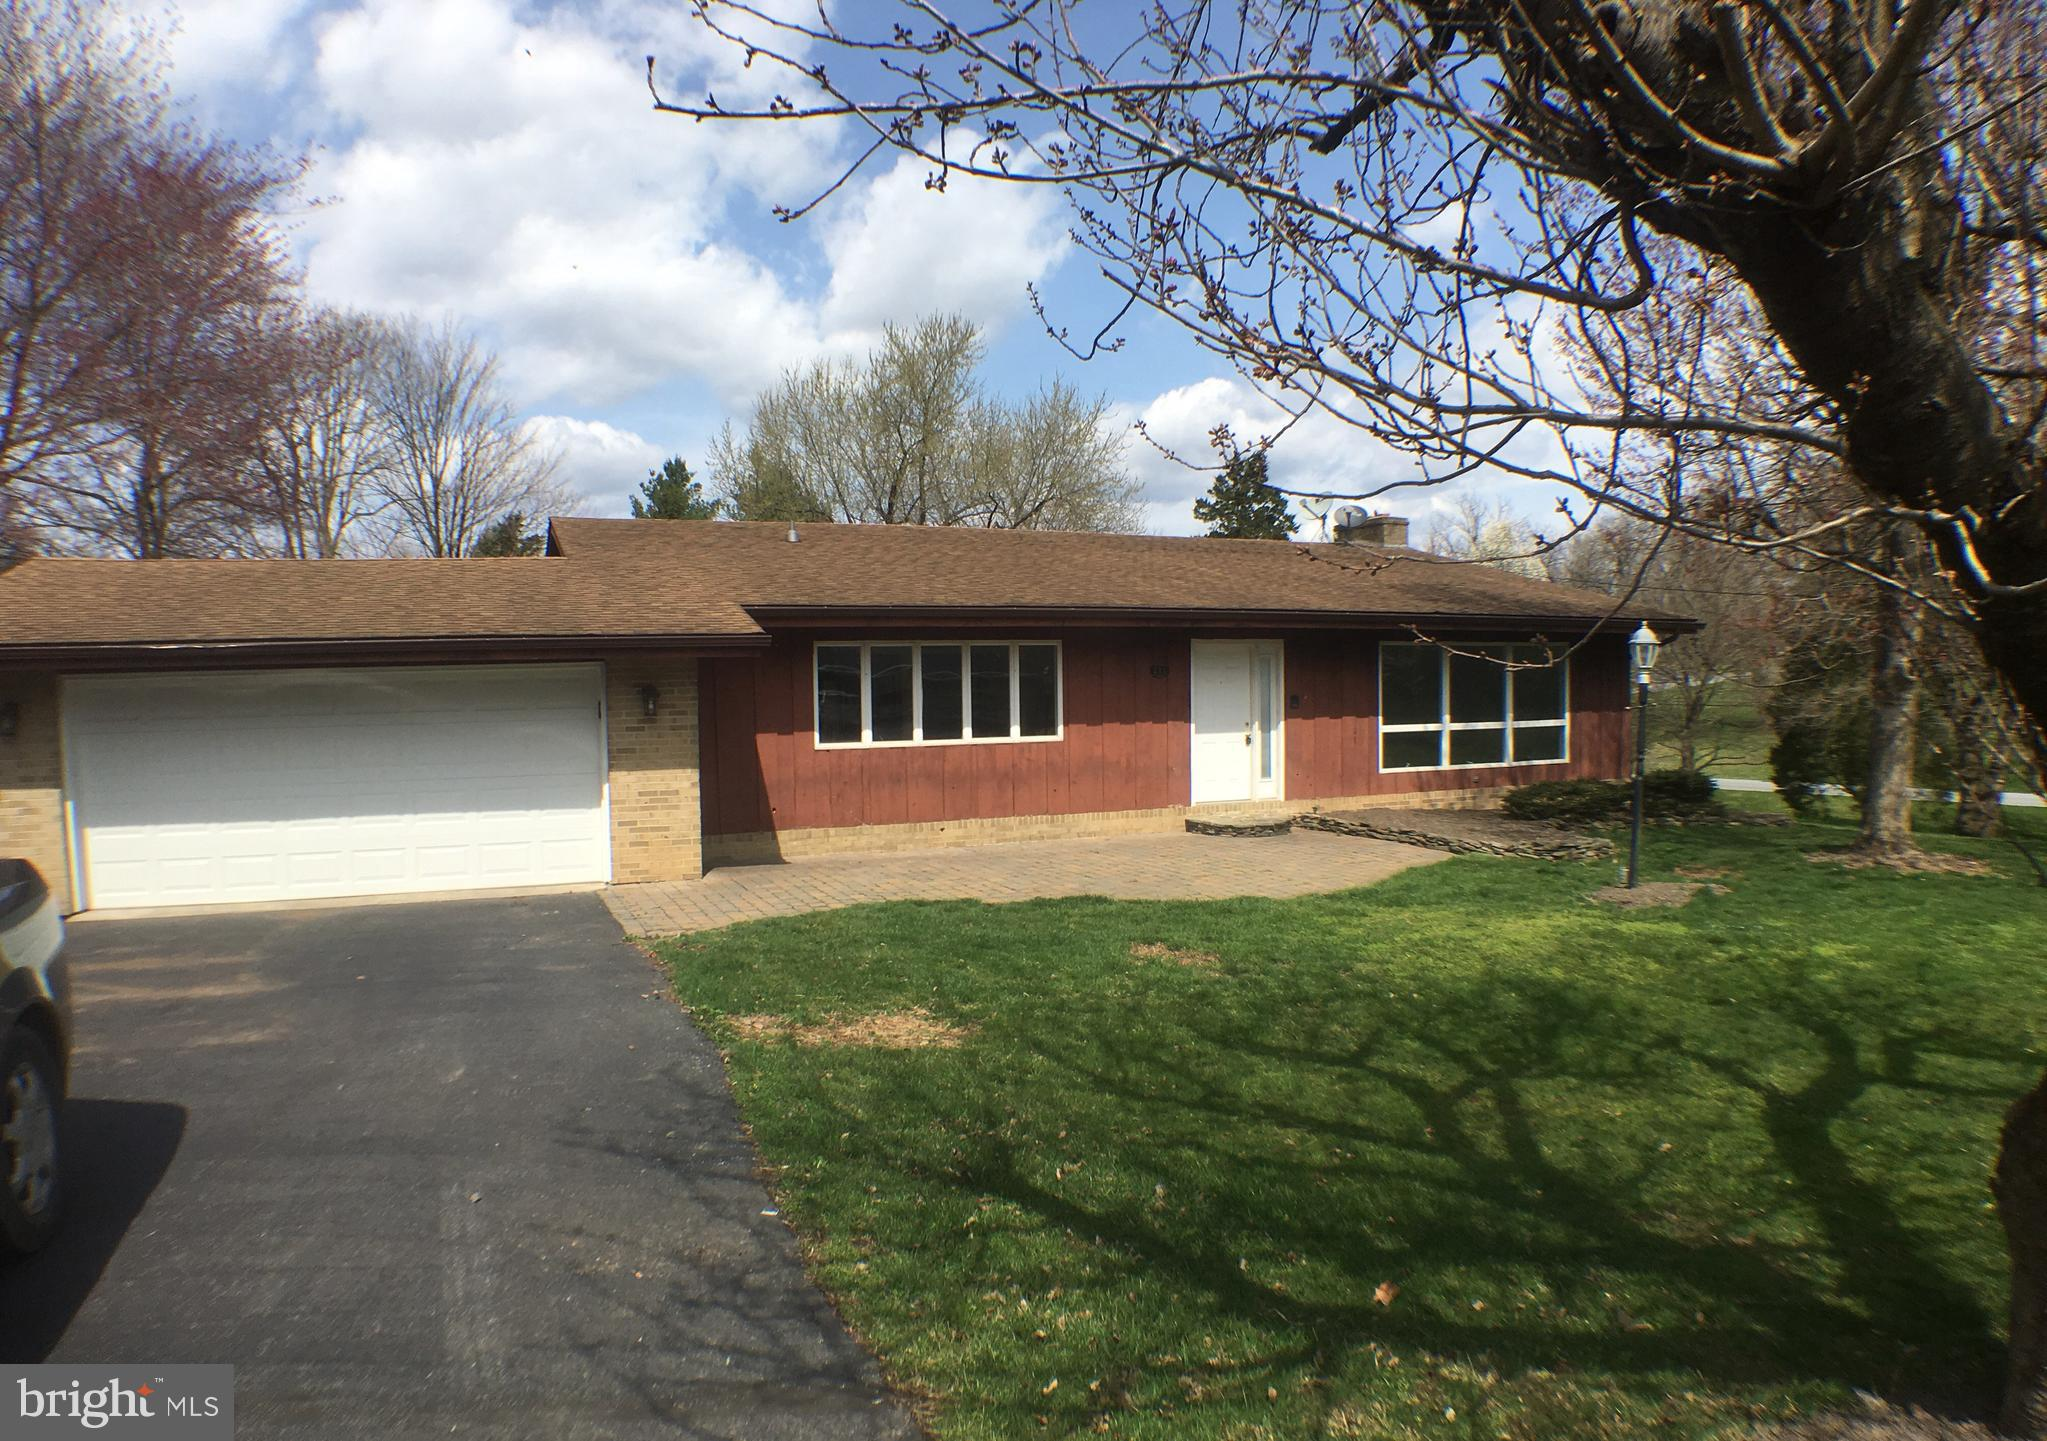 Ranch Style home located in Pikeview Acres North sits on approx. 0.42 ac and includes 3 Br, 3 Ba floorplan with fireplace in separate living room, separate dining room, large windows for lots of sunlight, fully finished basement with extra room for storage and laundry area and attached garage.